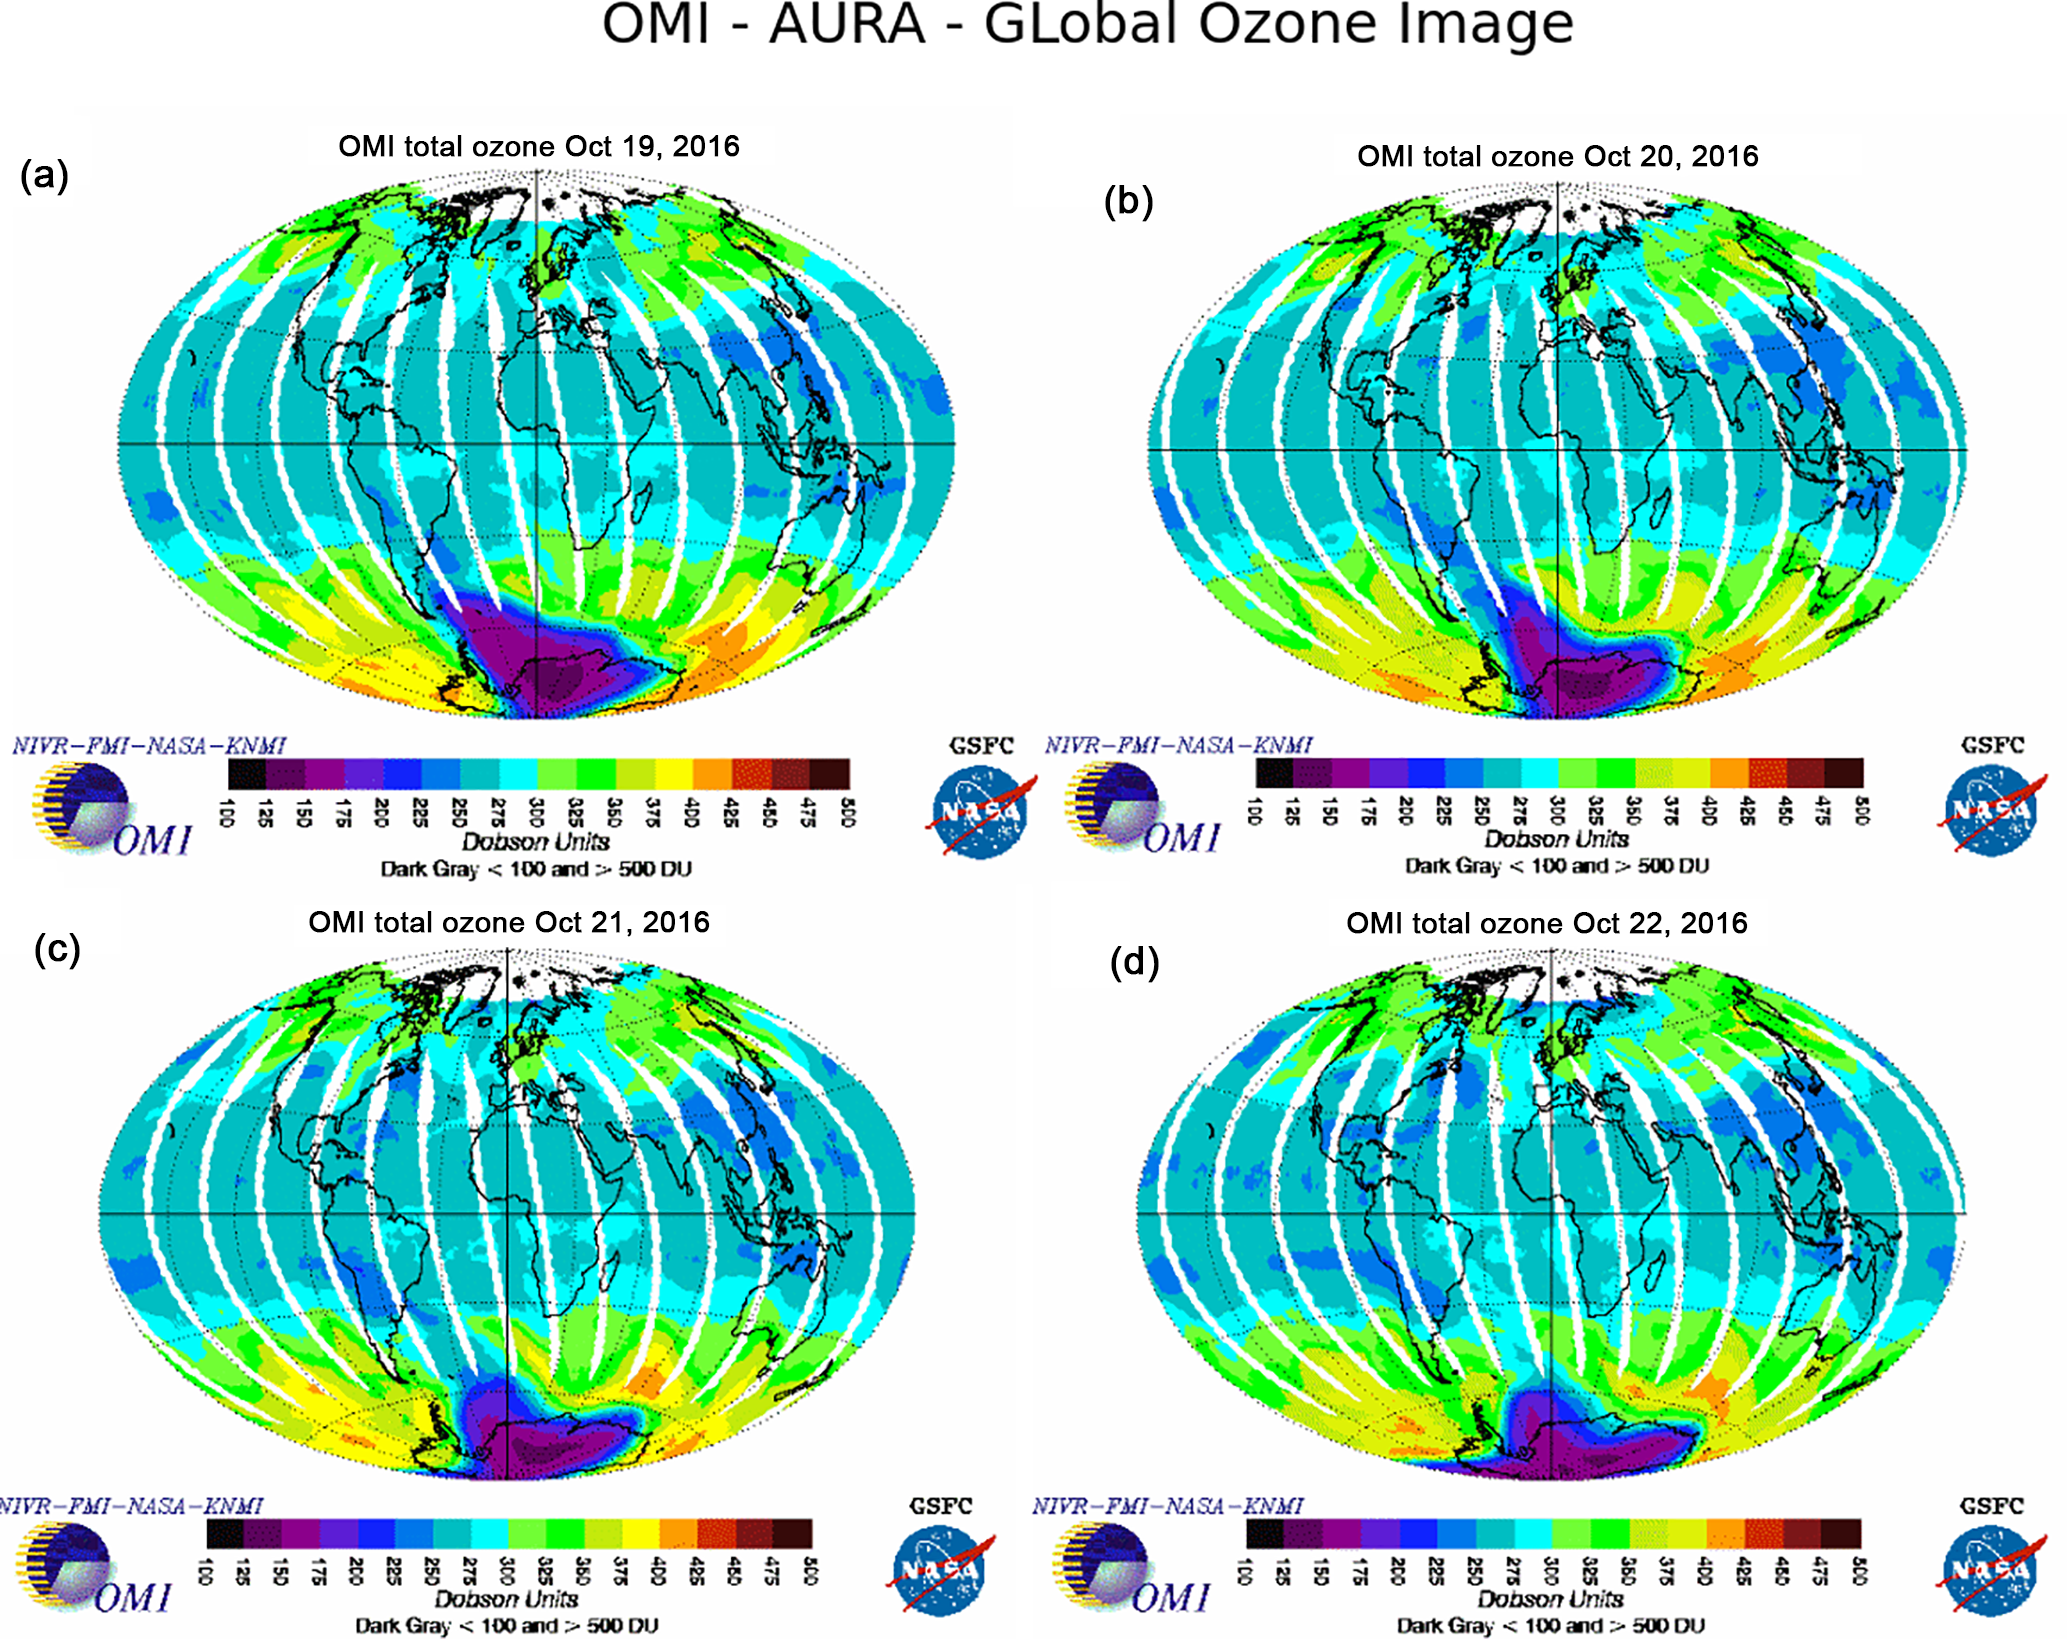 ANGEO - Report of a large depletion in the ozone layer over